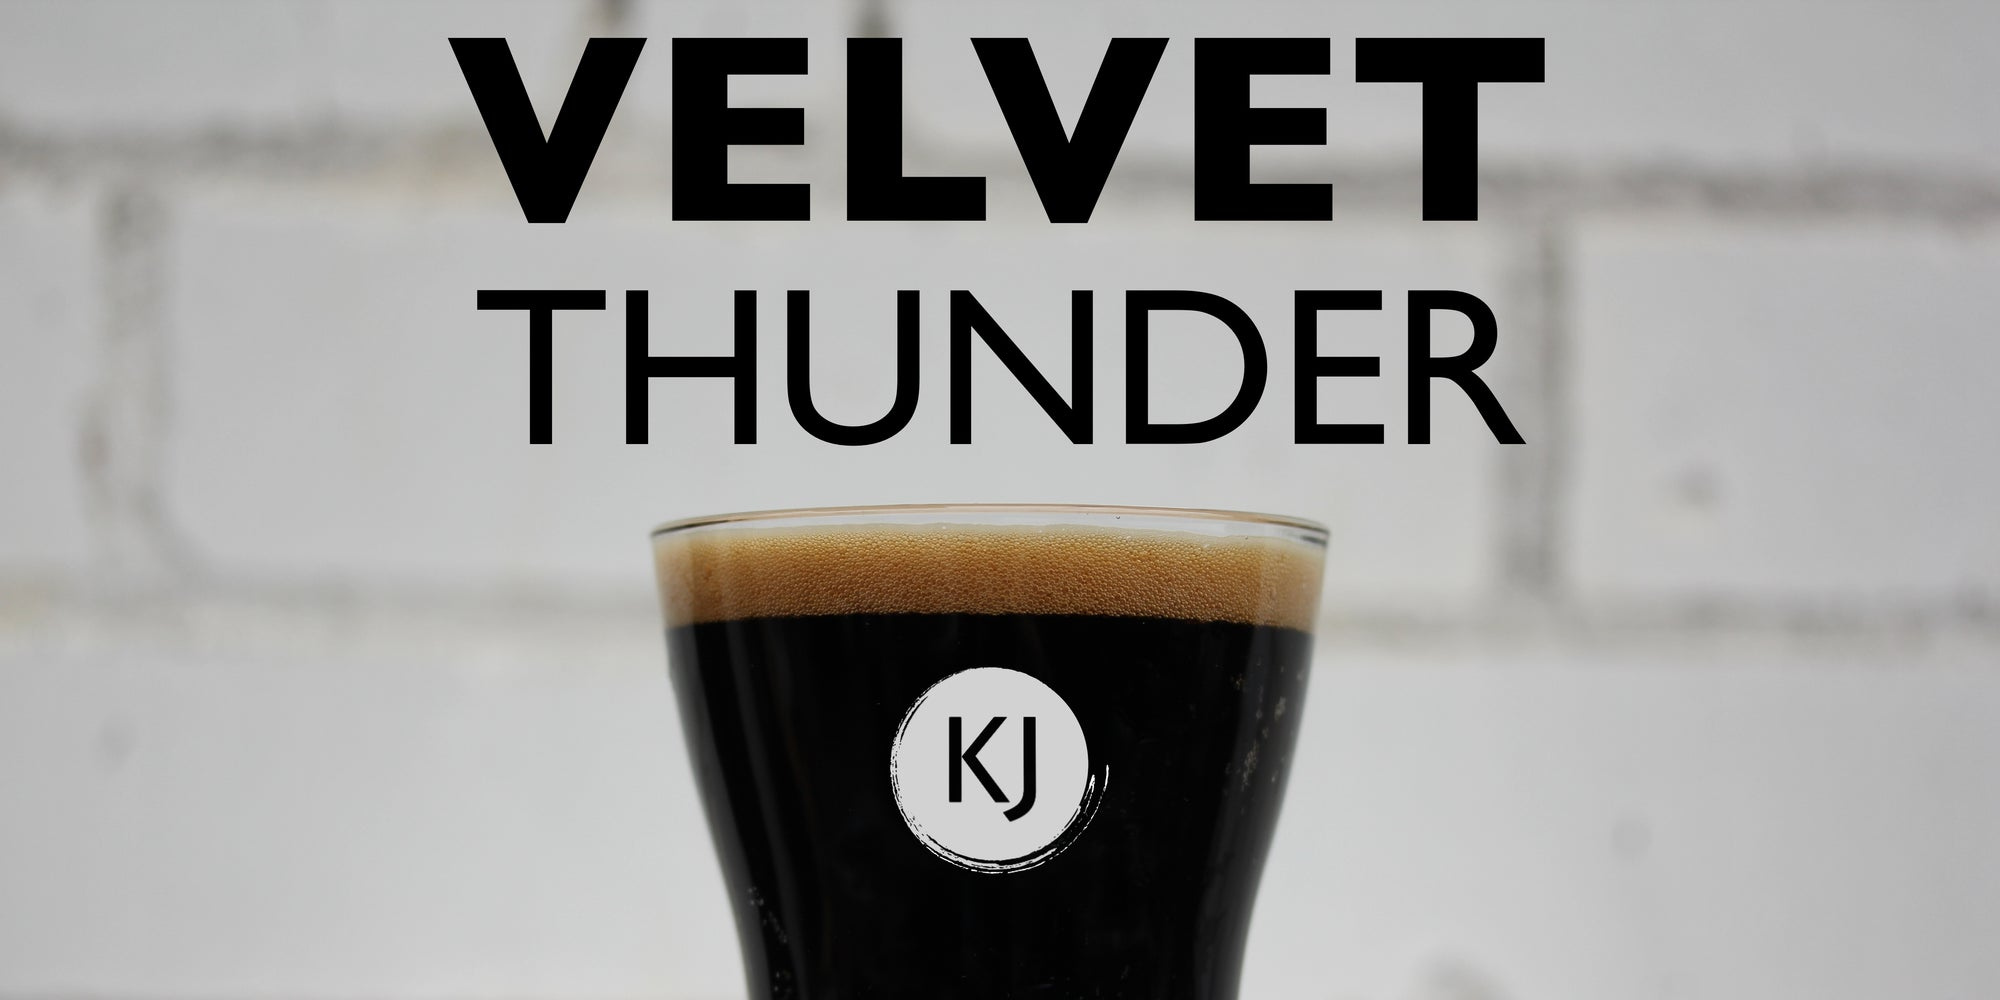 VELVET THUNDER - Imperial Stout Recipe